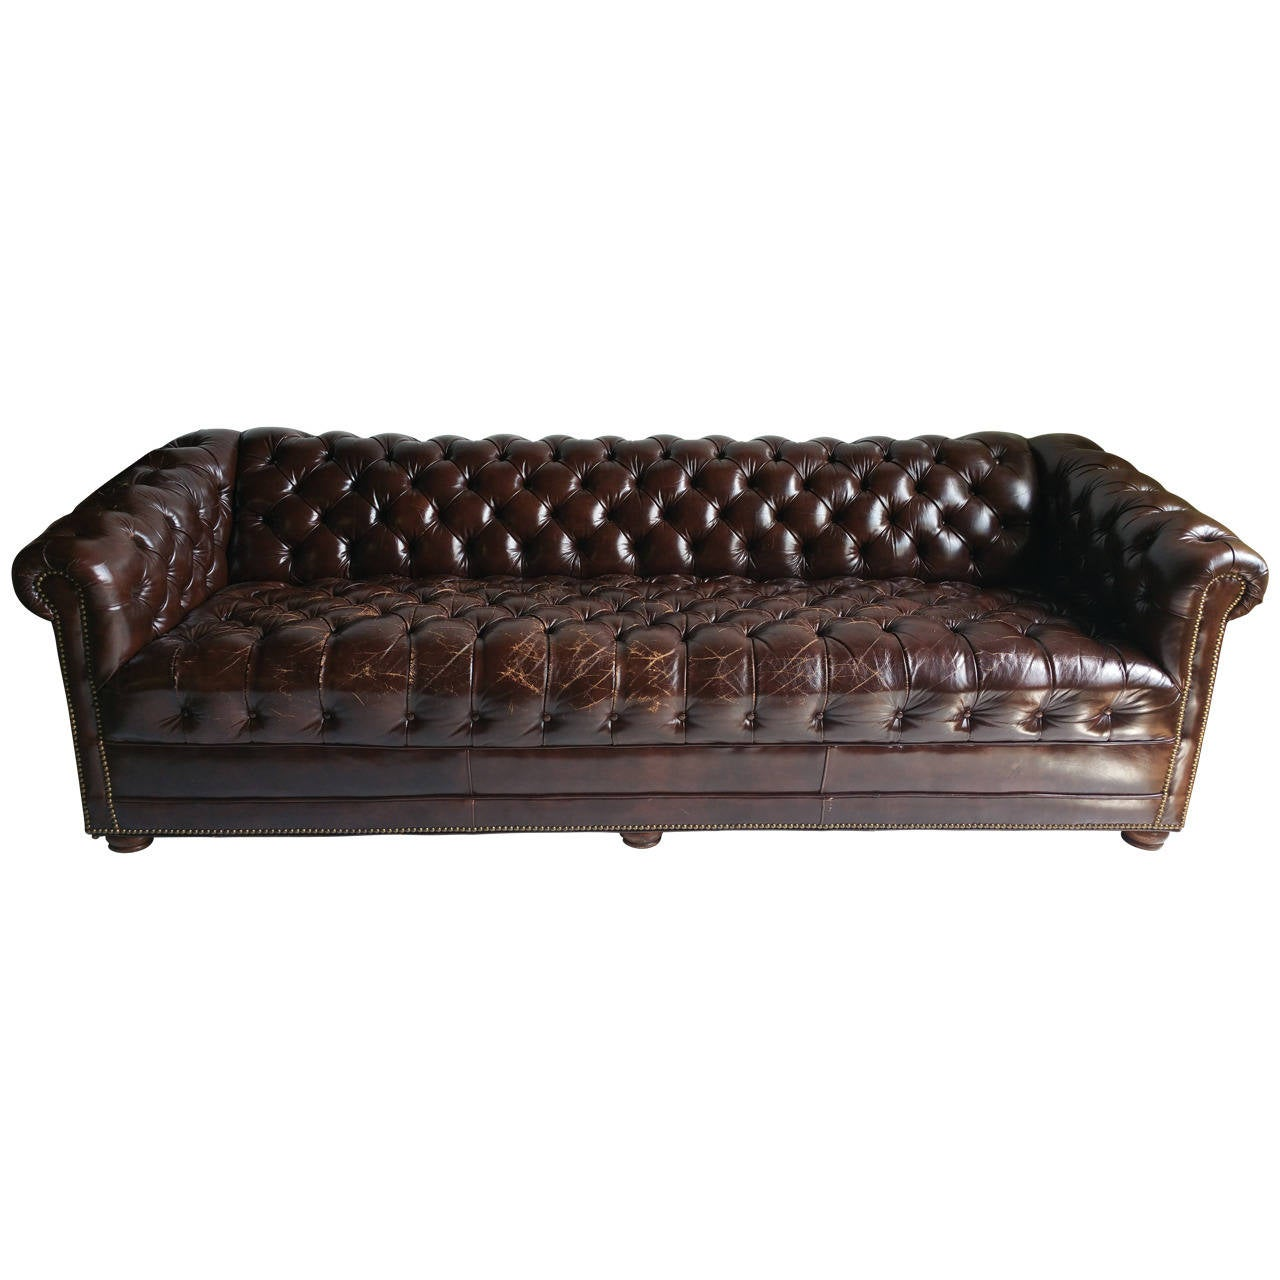 Ideal Brown Leather Button Tufted Chesterfield Sofa, Classic at 1stdibs TJ88